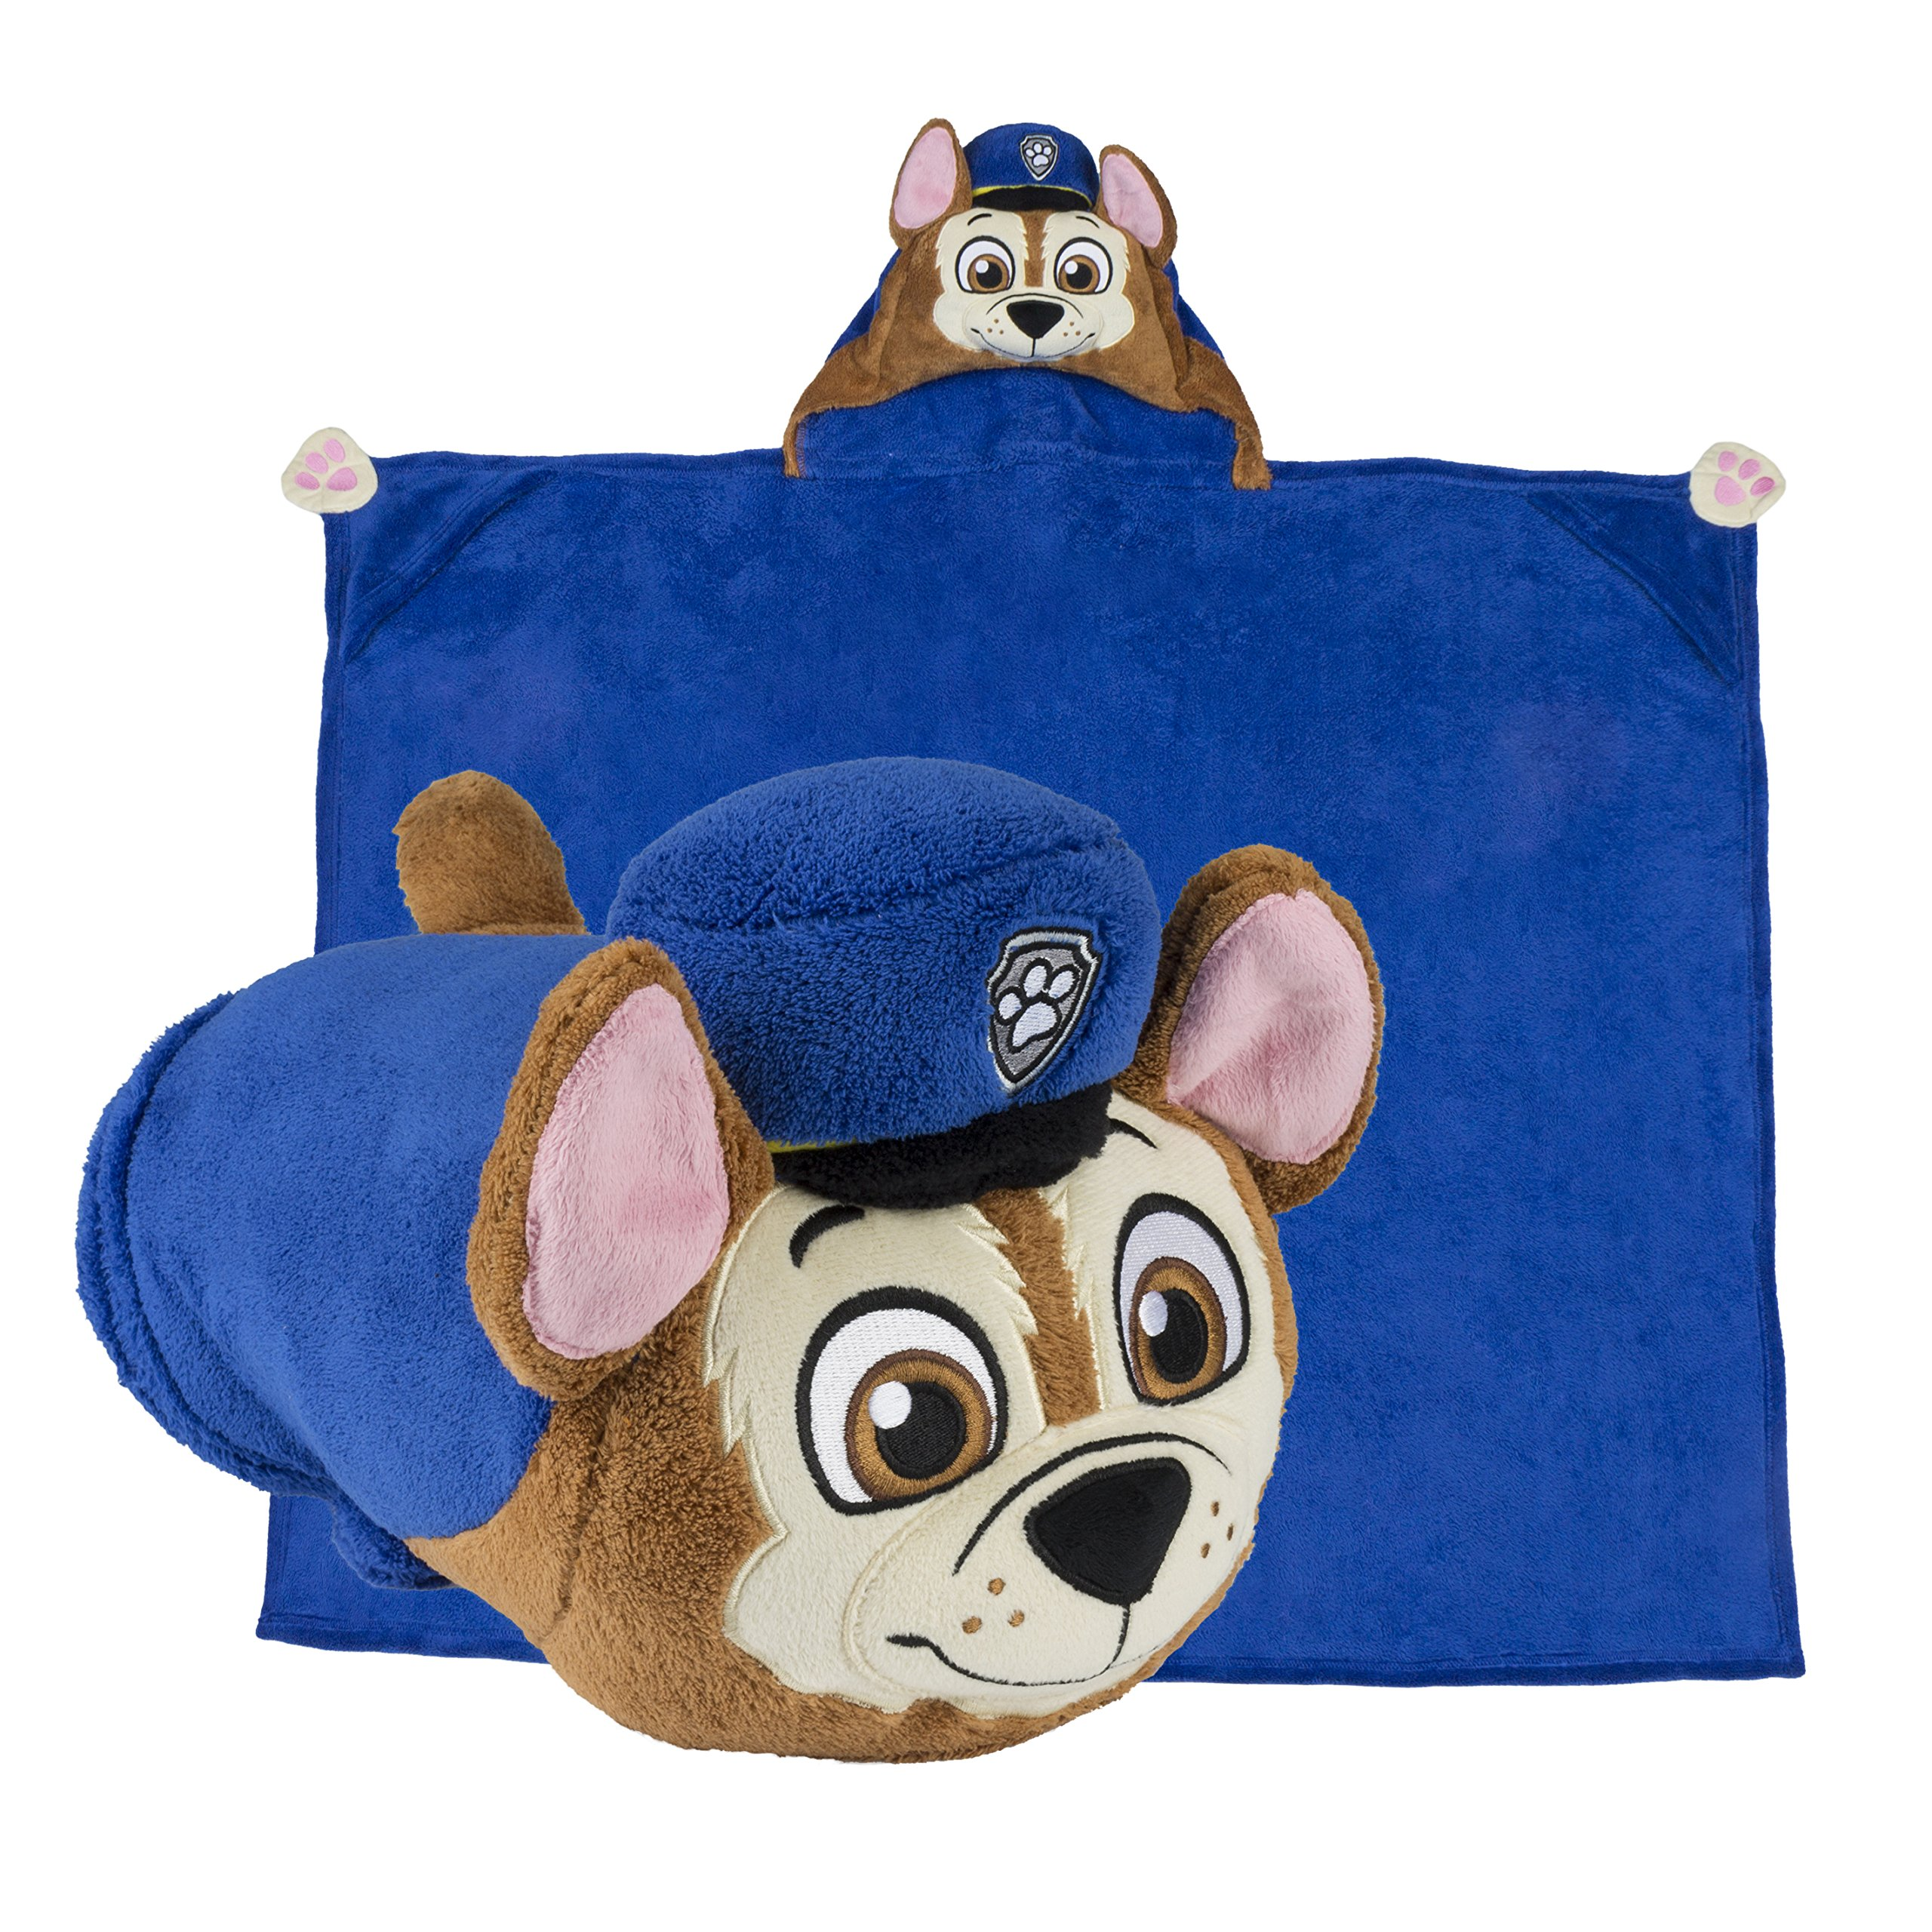 Comfy Critters Stuffed Animal Blanket - PAW Patrol Chase - Kids Huggable Pillow and Blanket Perfect for Pretend Play, Travel, nap time. by Comfy Critters